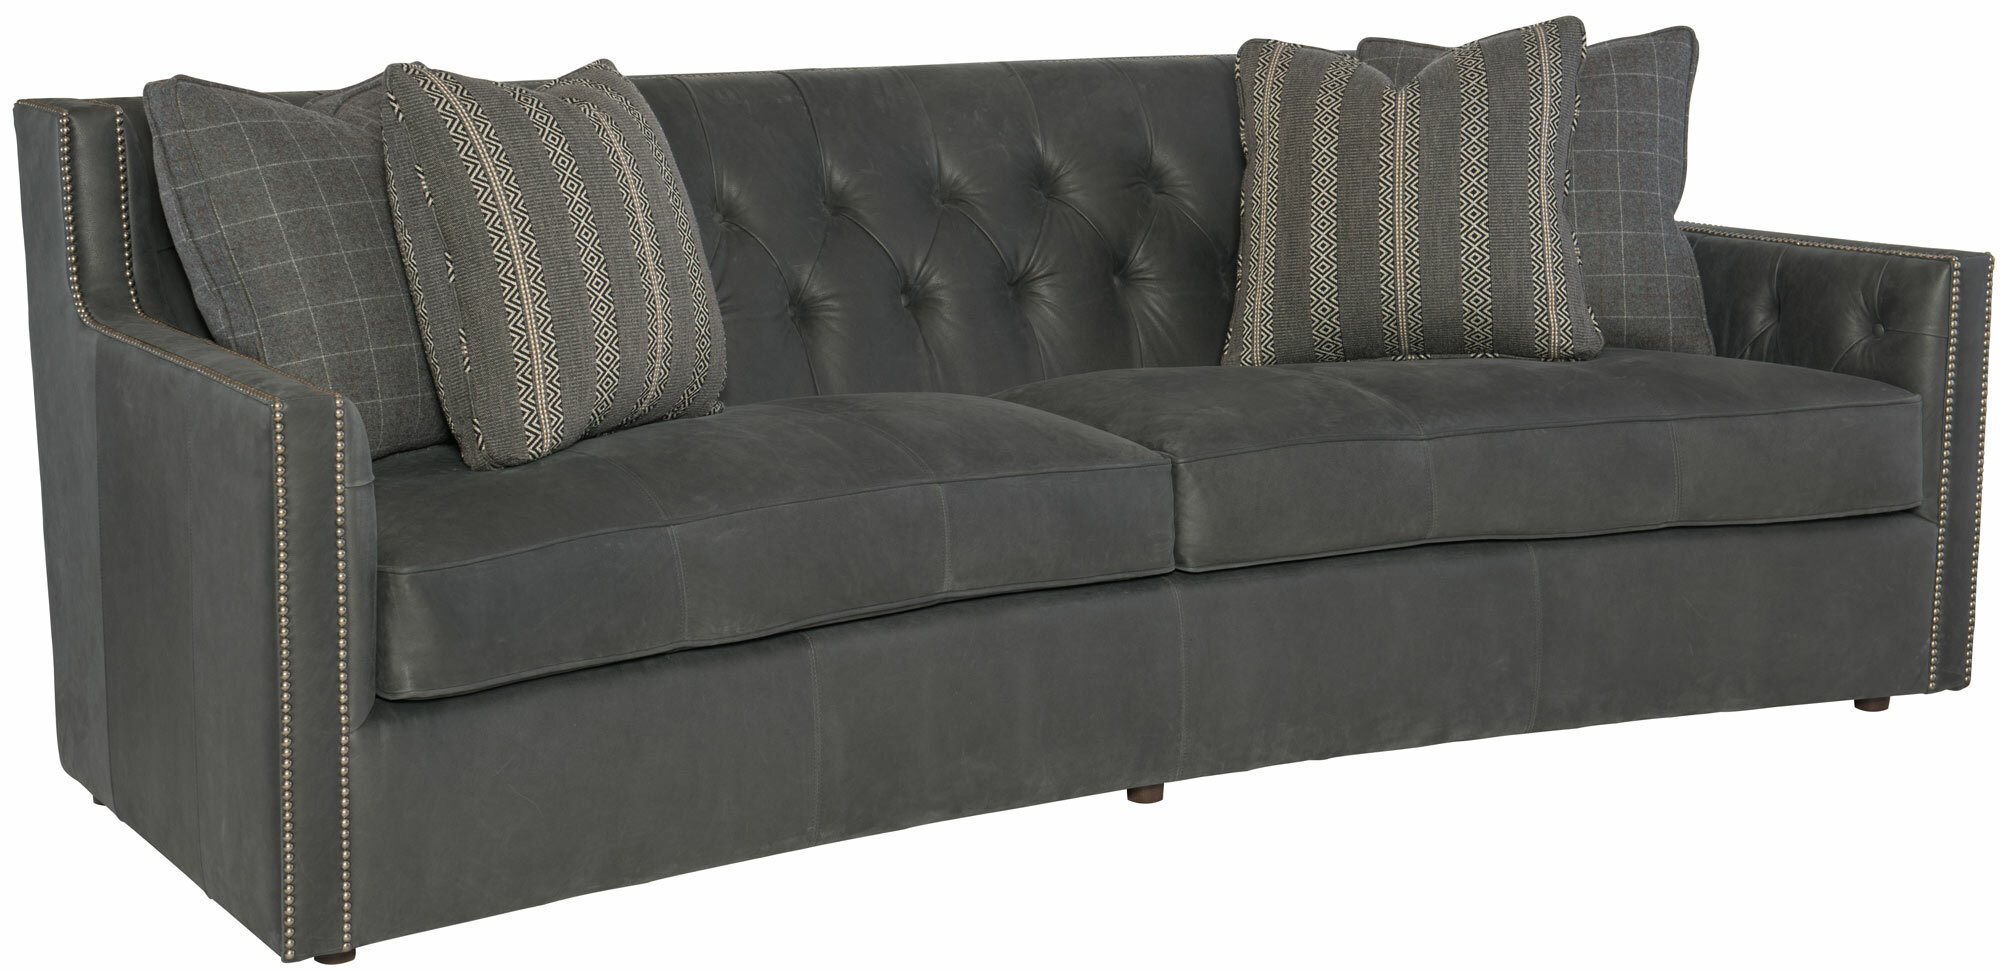 Enjoyable Bernhardt Brae Sofa Wayfair Interior Design Ideas Inesswwsoteloinfo